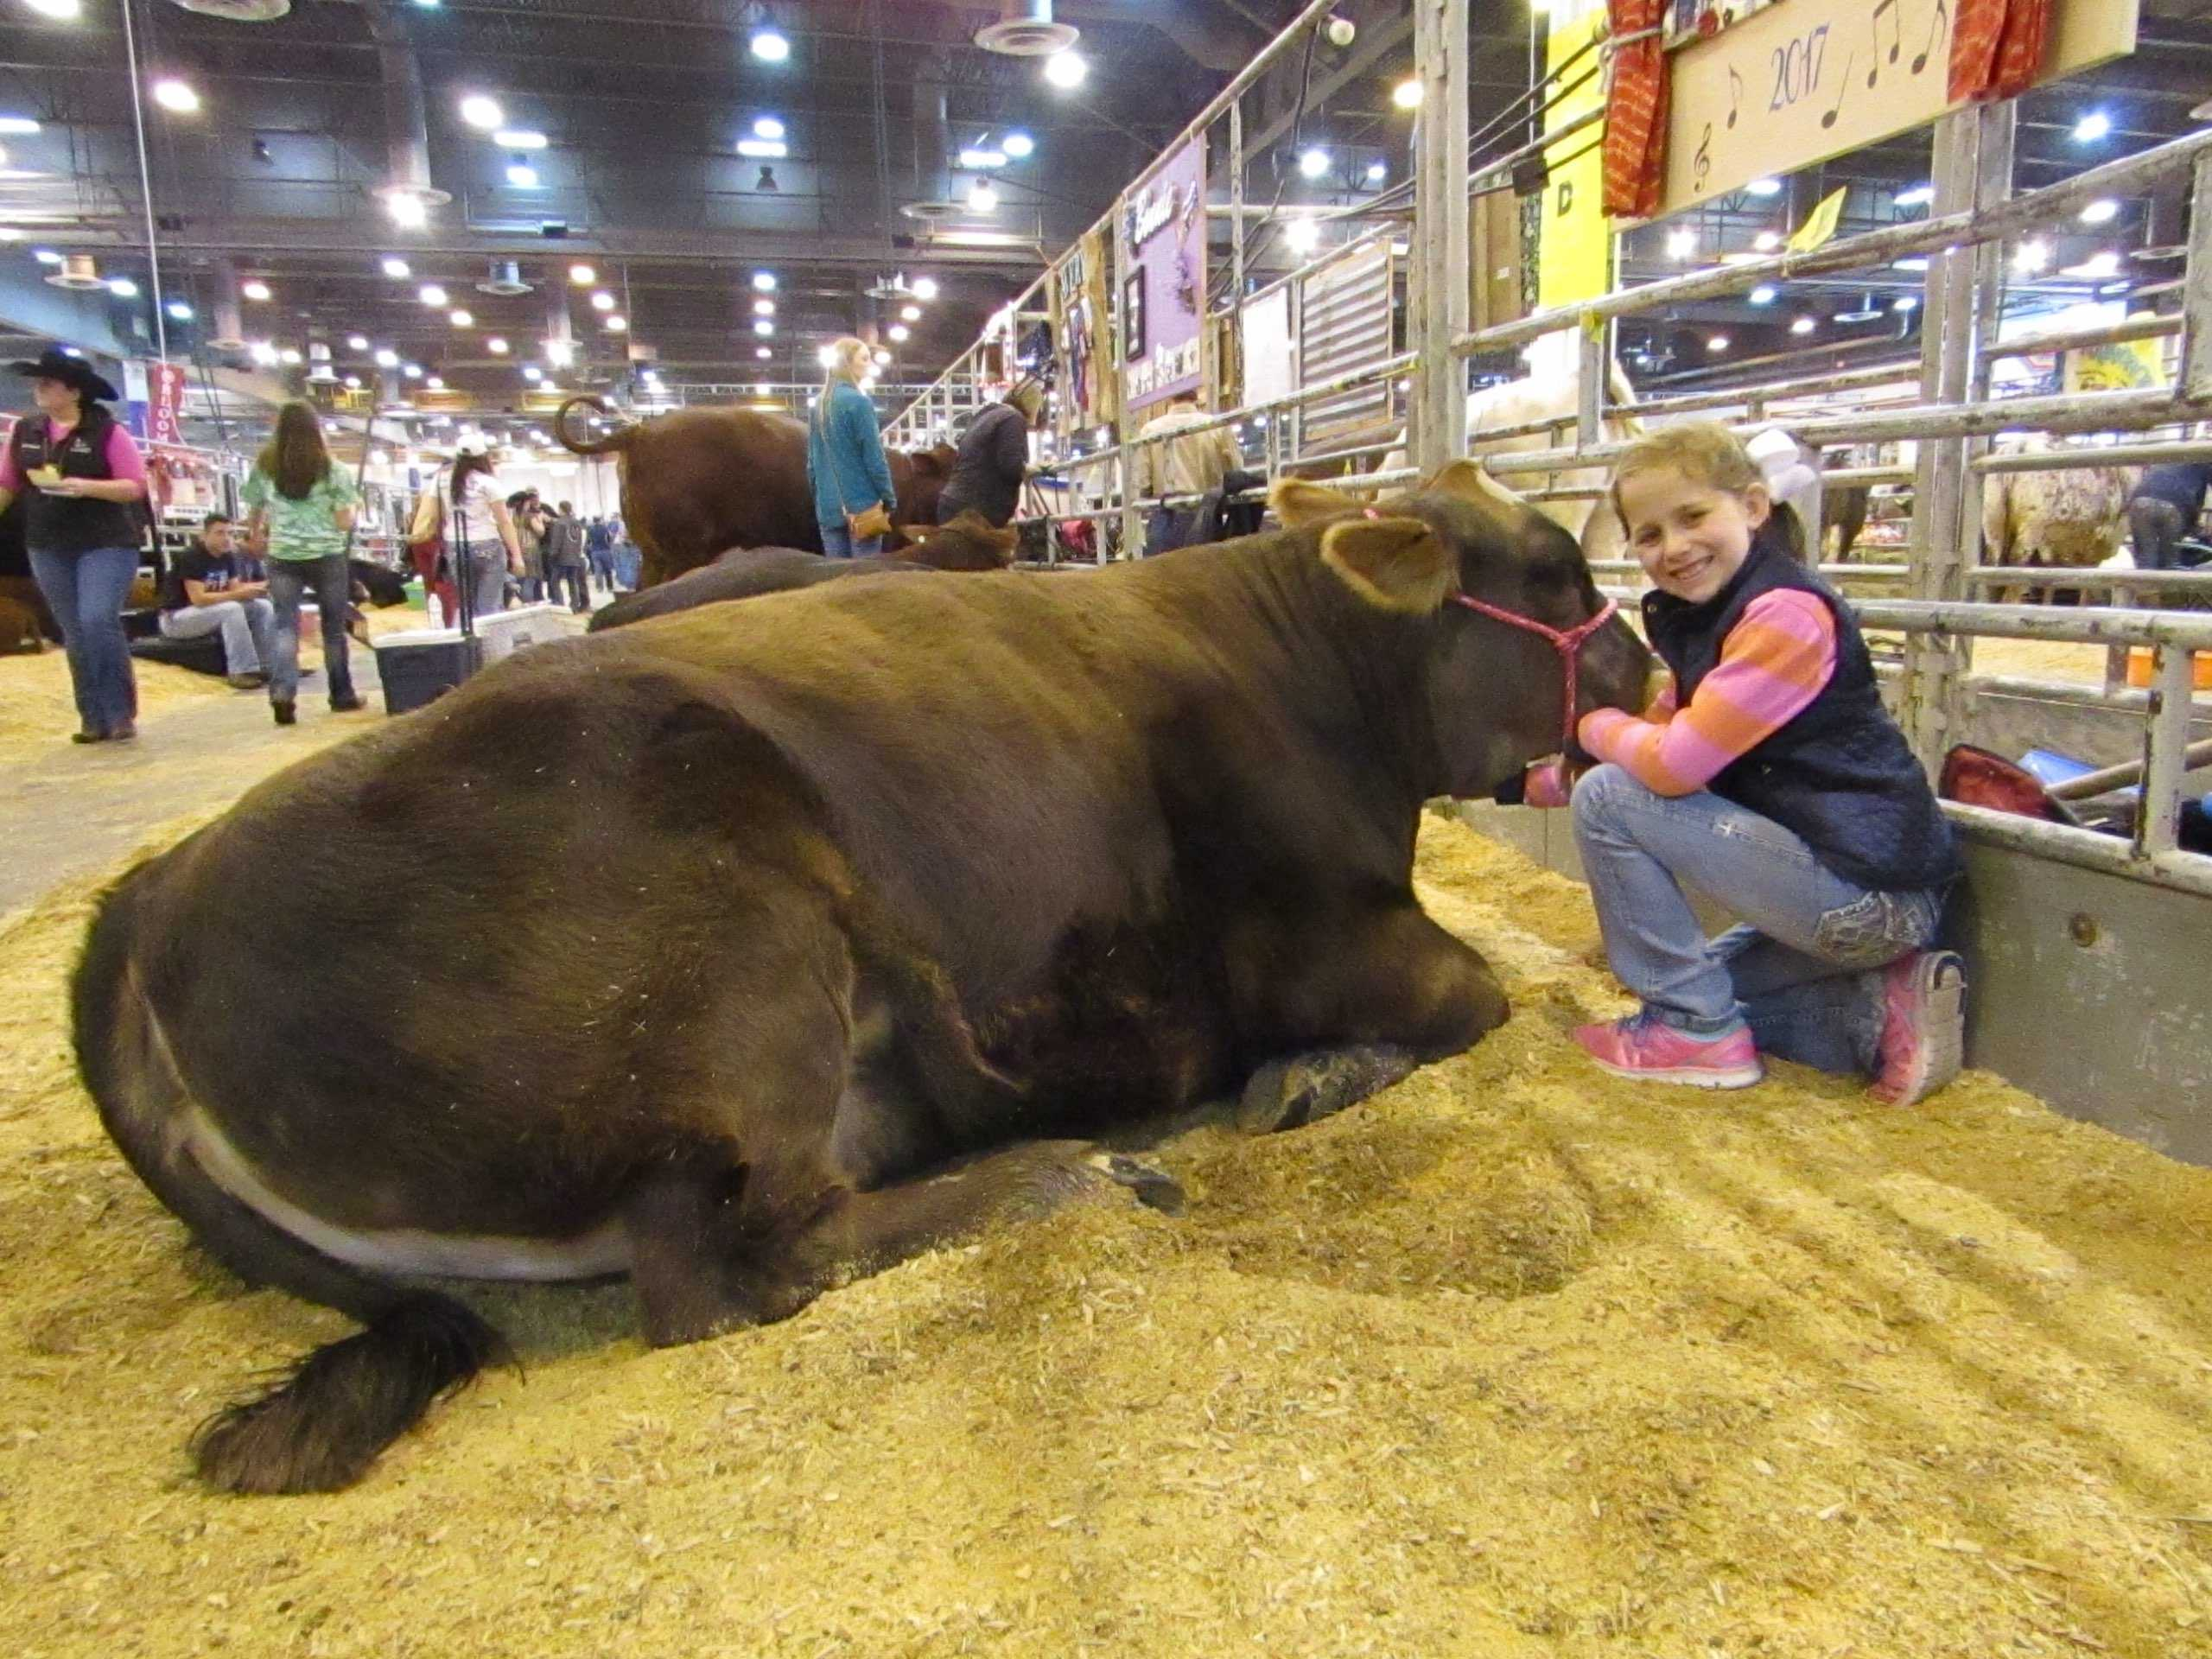 Kiersten Priddy with her heifer named Sweet Caroline at the Houston Livestock Show and Rodeo a day before their showing at the Calf Scramble Beef Heifer Show in the NRG Center.